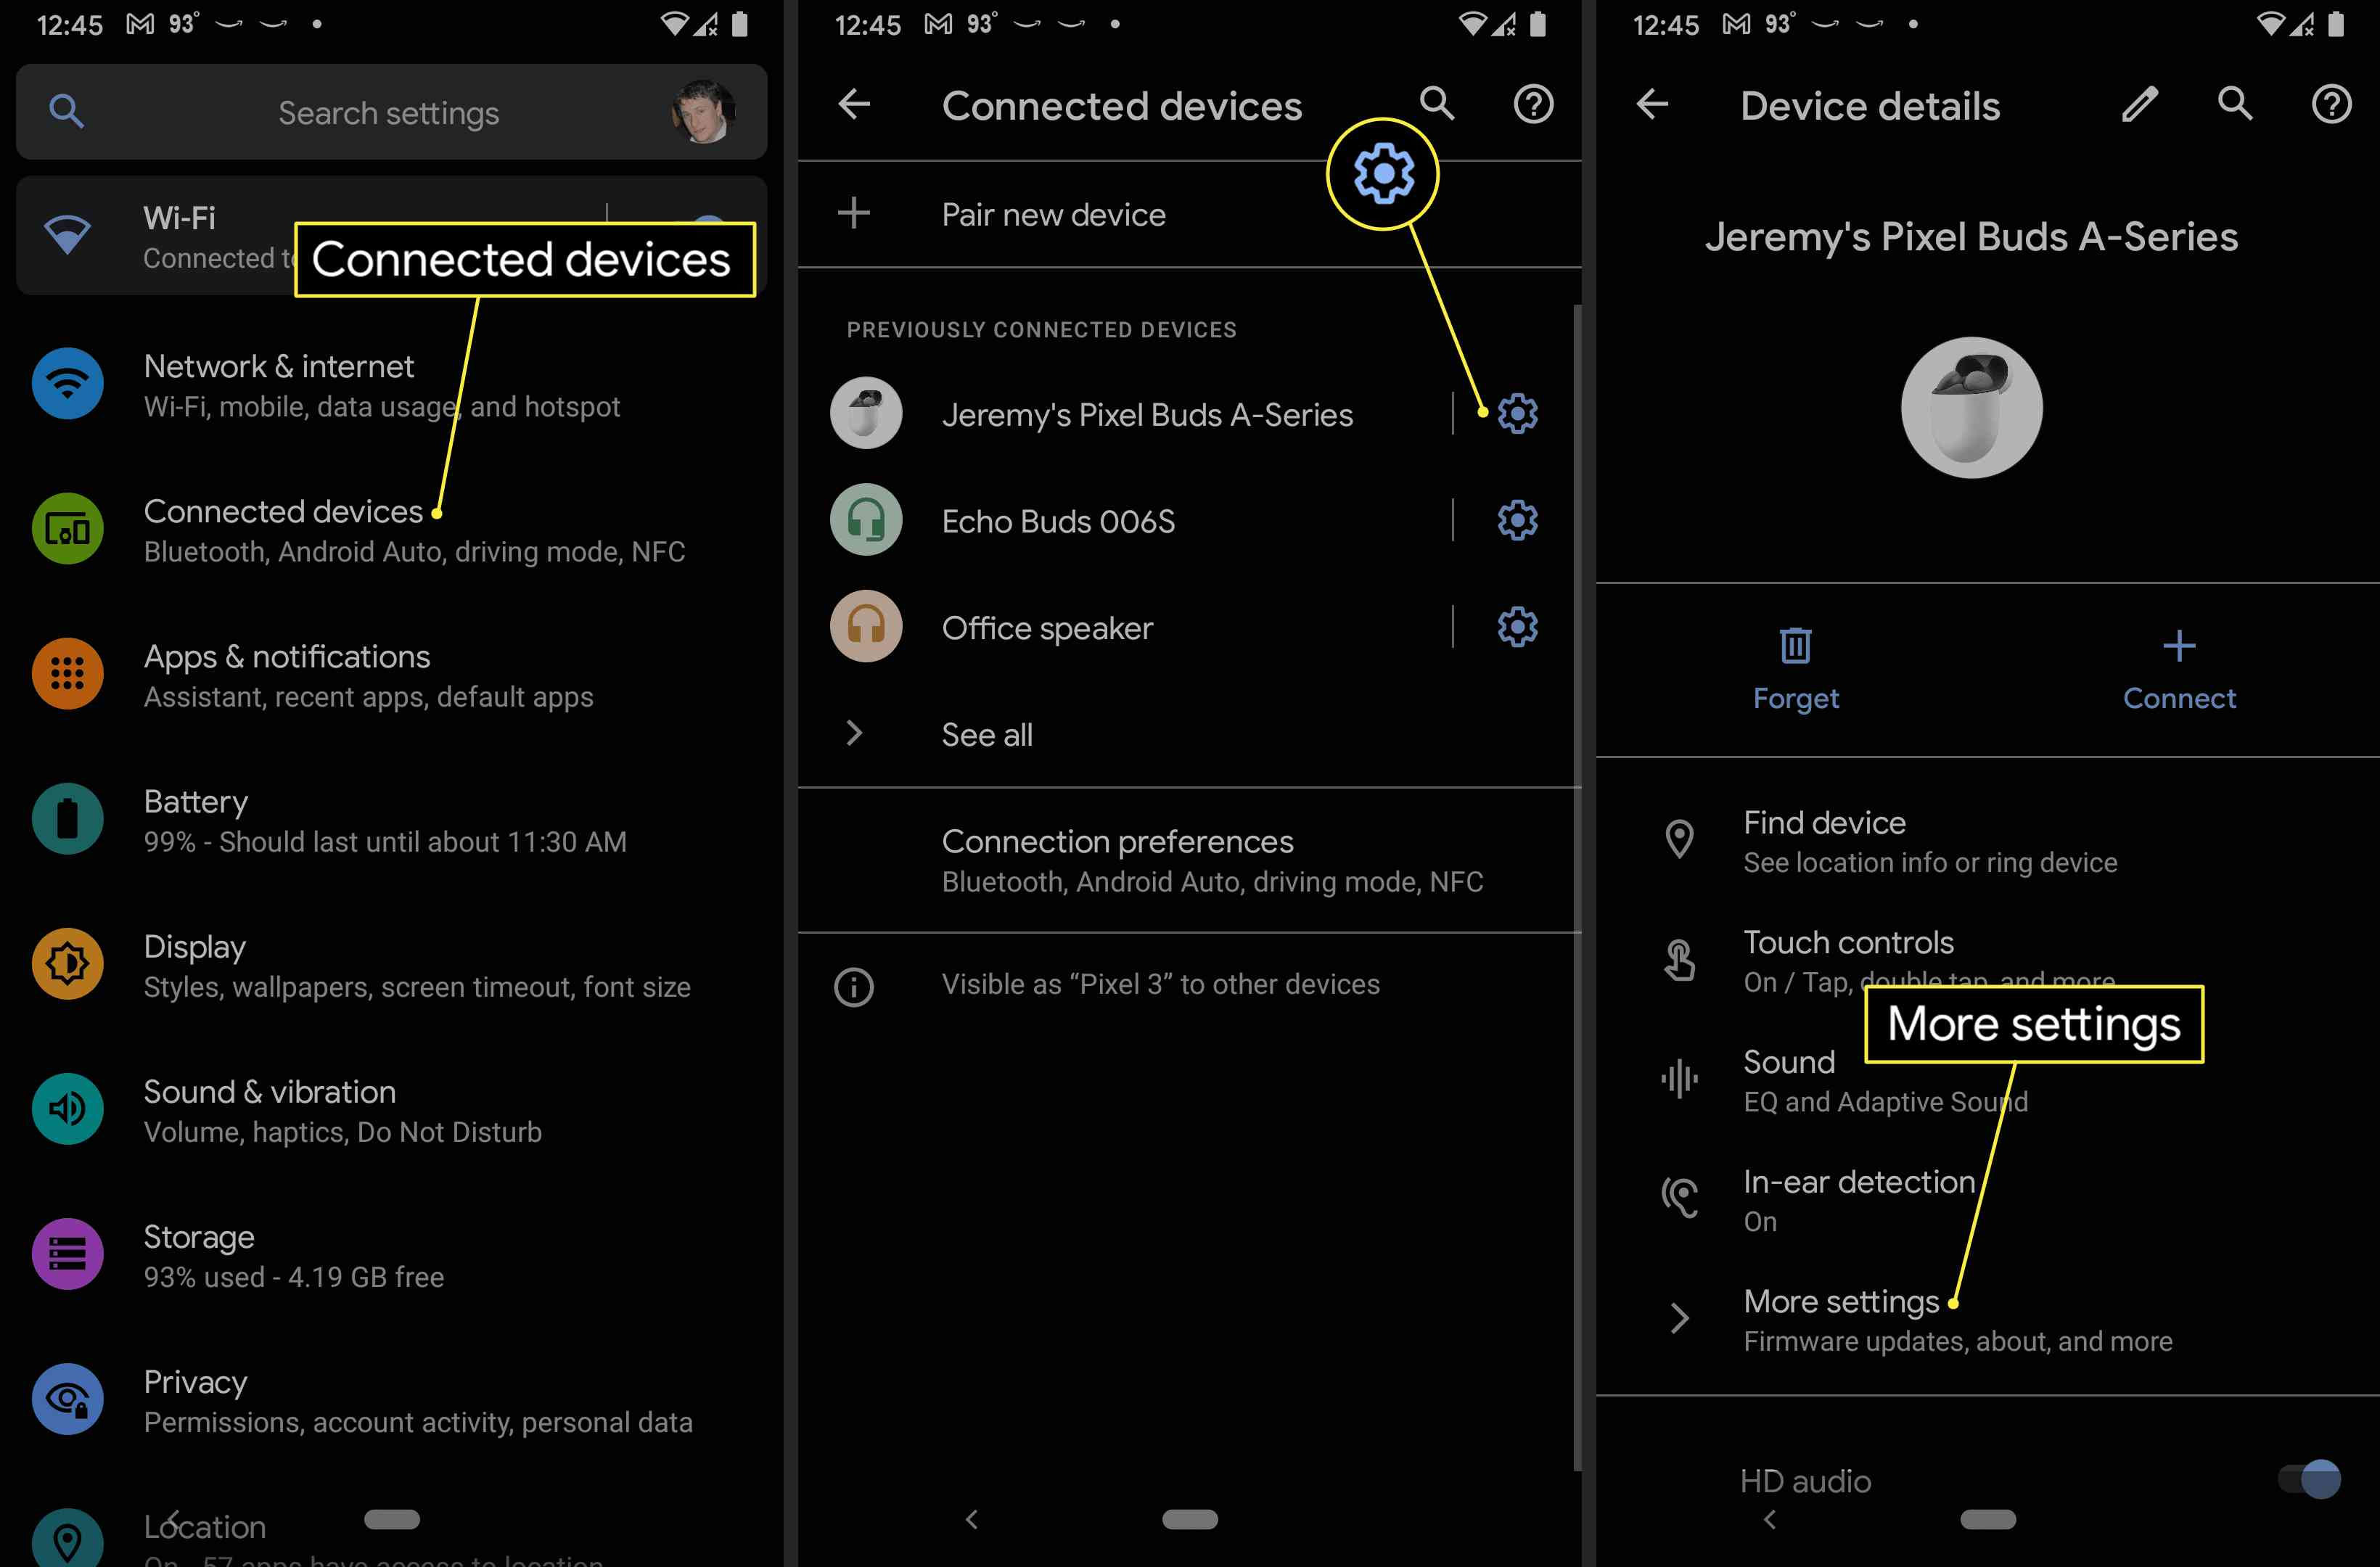 Connected devices, Settings gear, and More settings highlighted in Pixel Bud settings